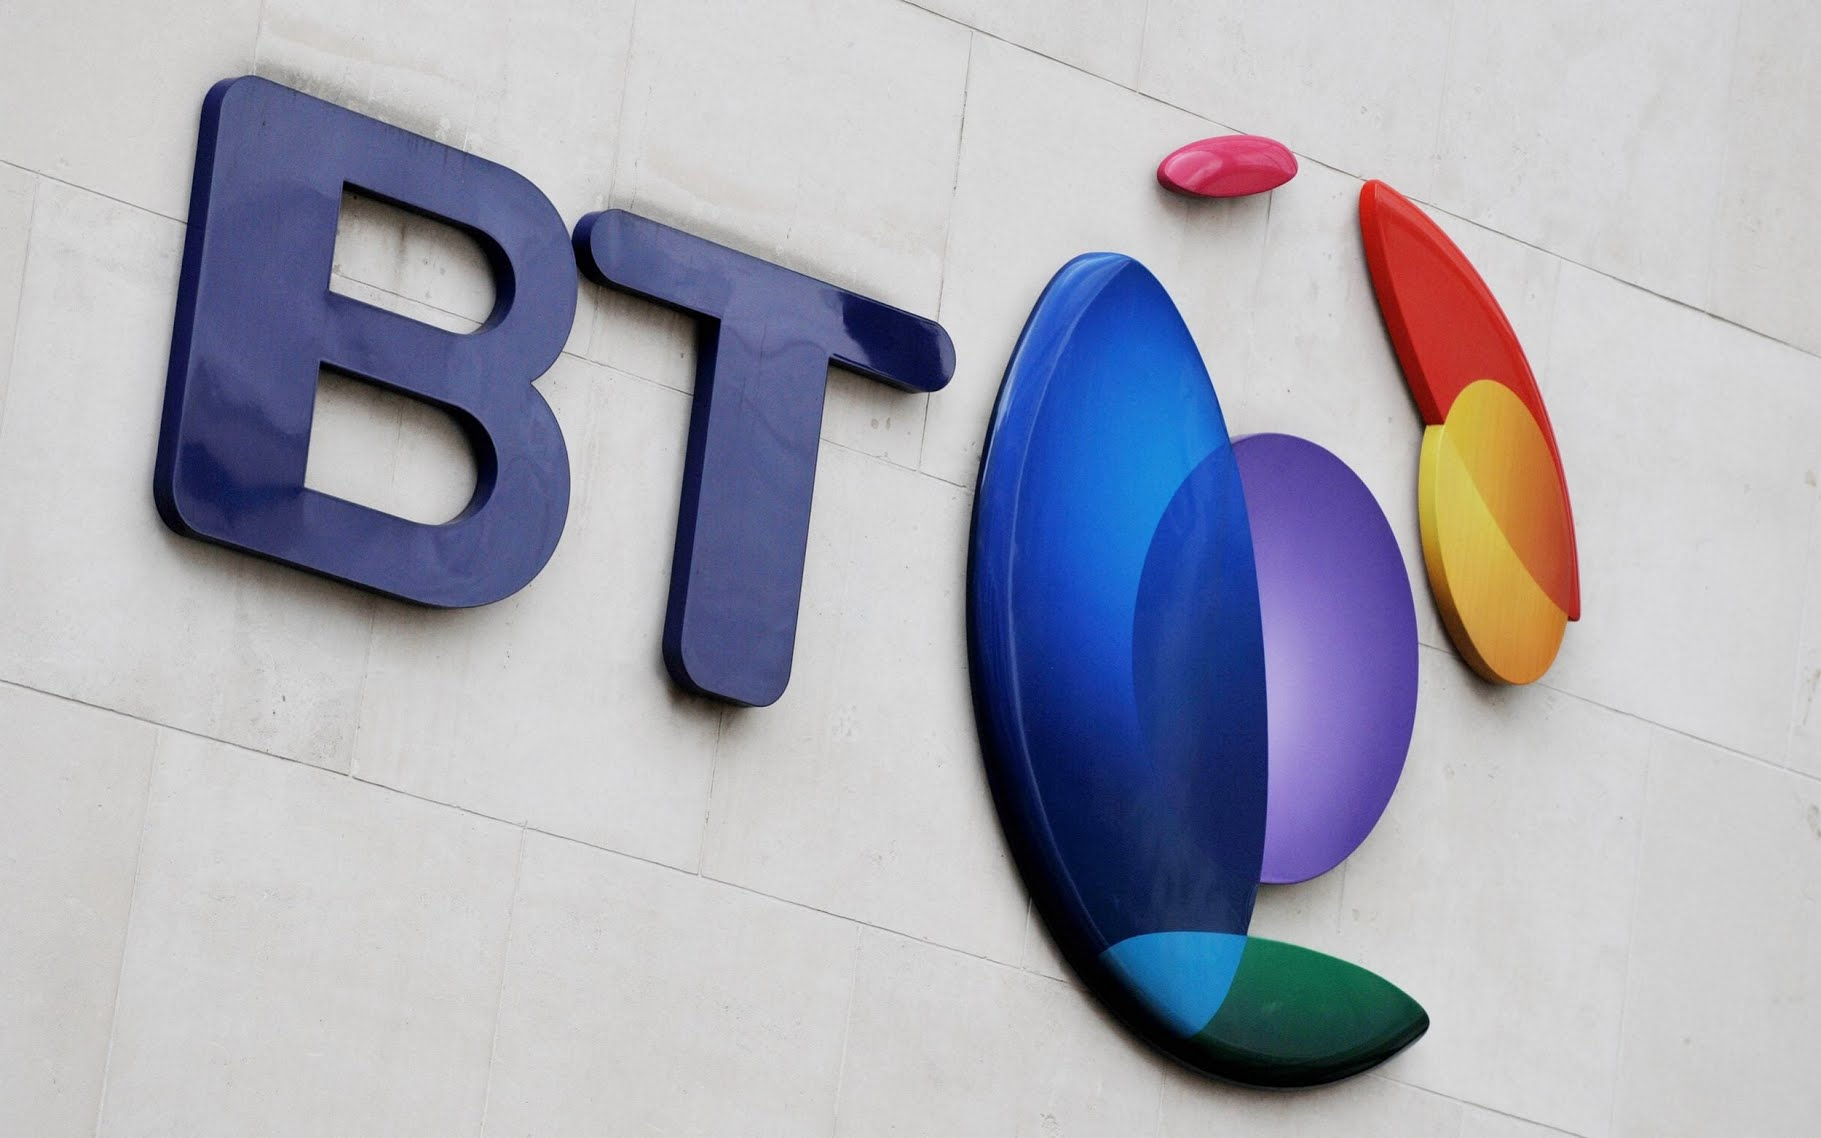 BT faces threat of first national strike in 30 years